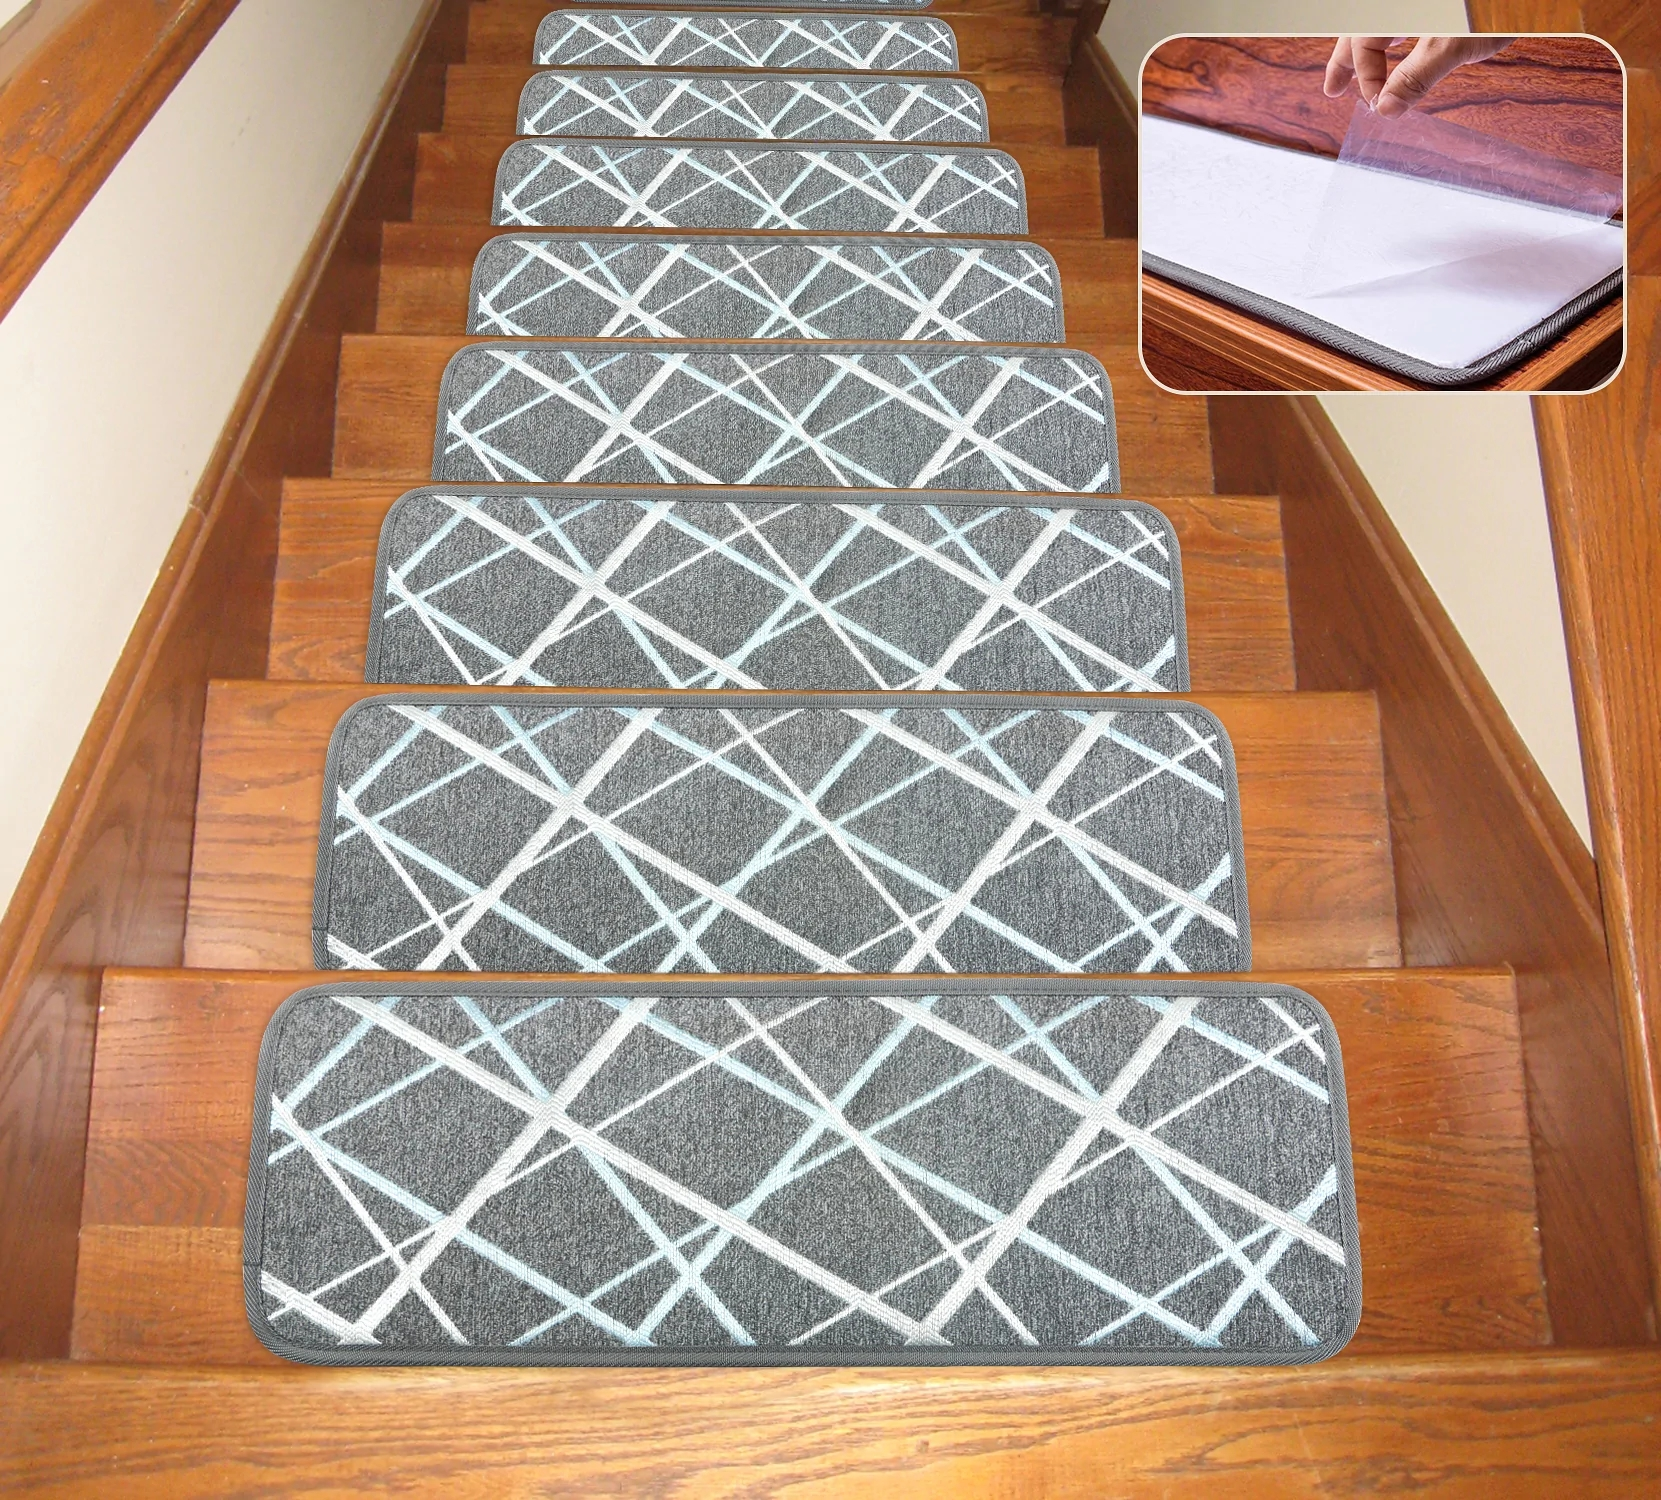 Seloom Non Slip Washable Stair Treads Carpet With Skid Resistant Rubbe   Non Slip Stair Treads For Carpeted Stairs   Walmart   Skid Resistant   Basement Stairs   Indoor Stair   Slip Resistant